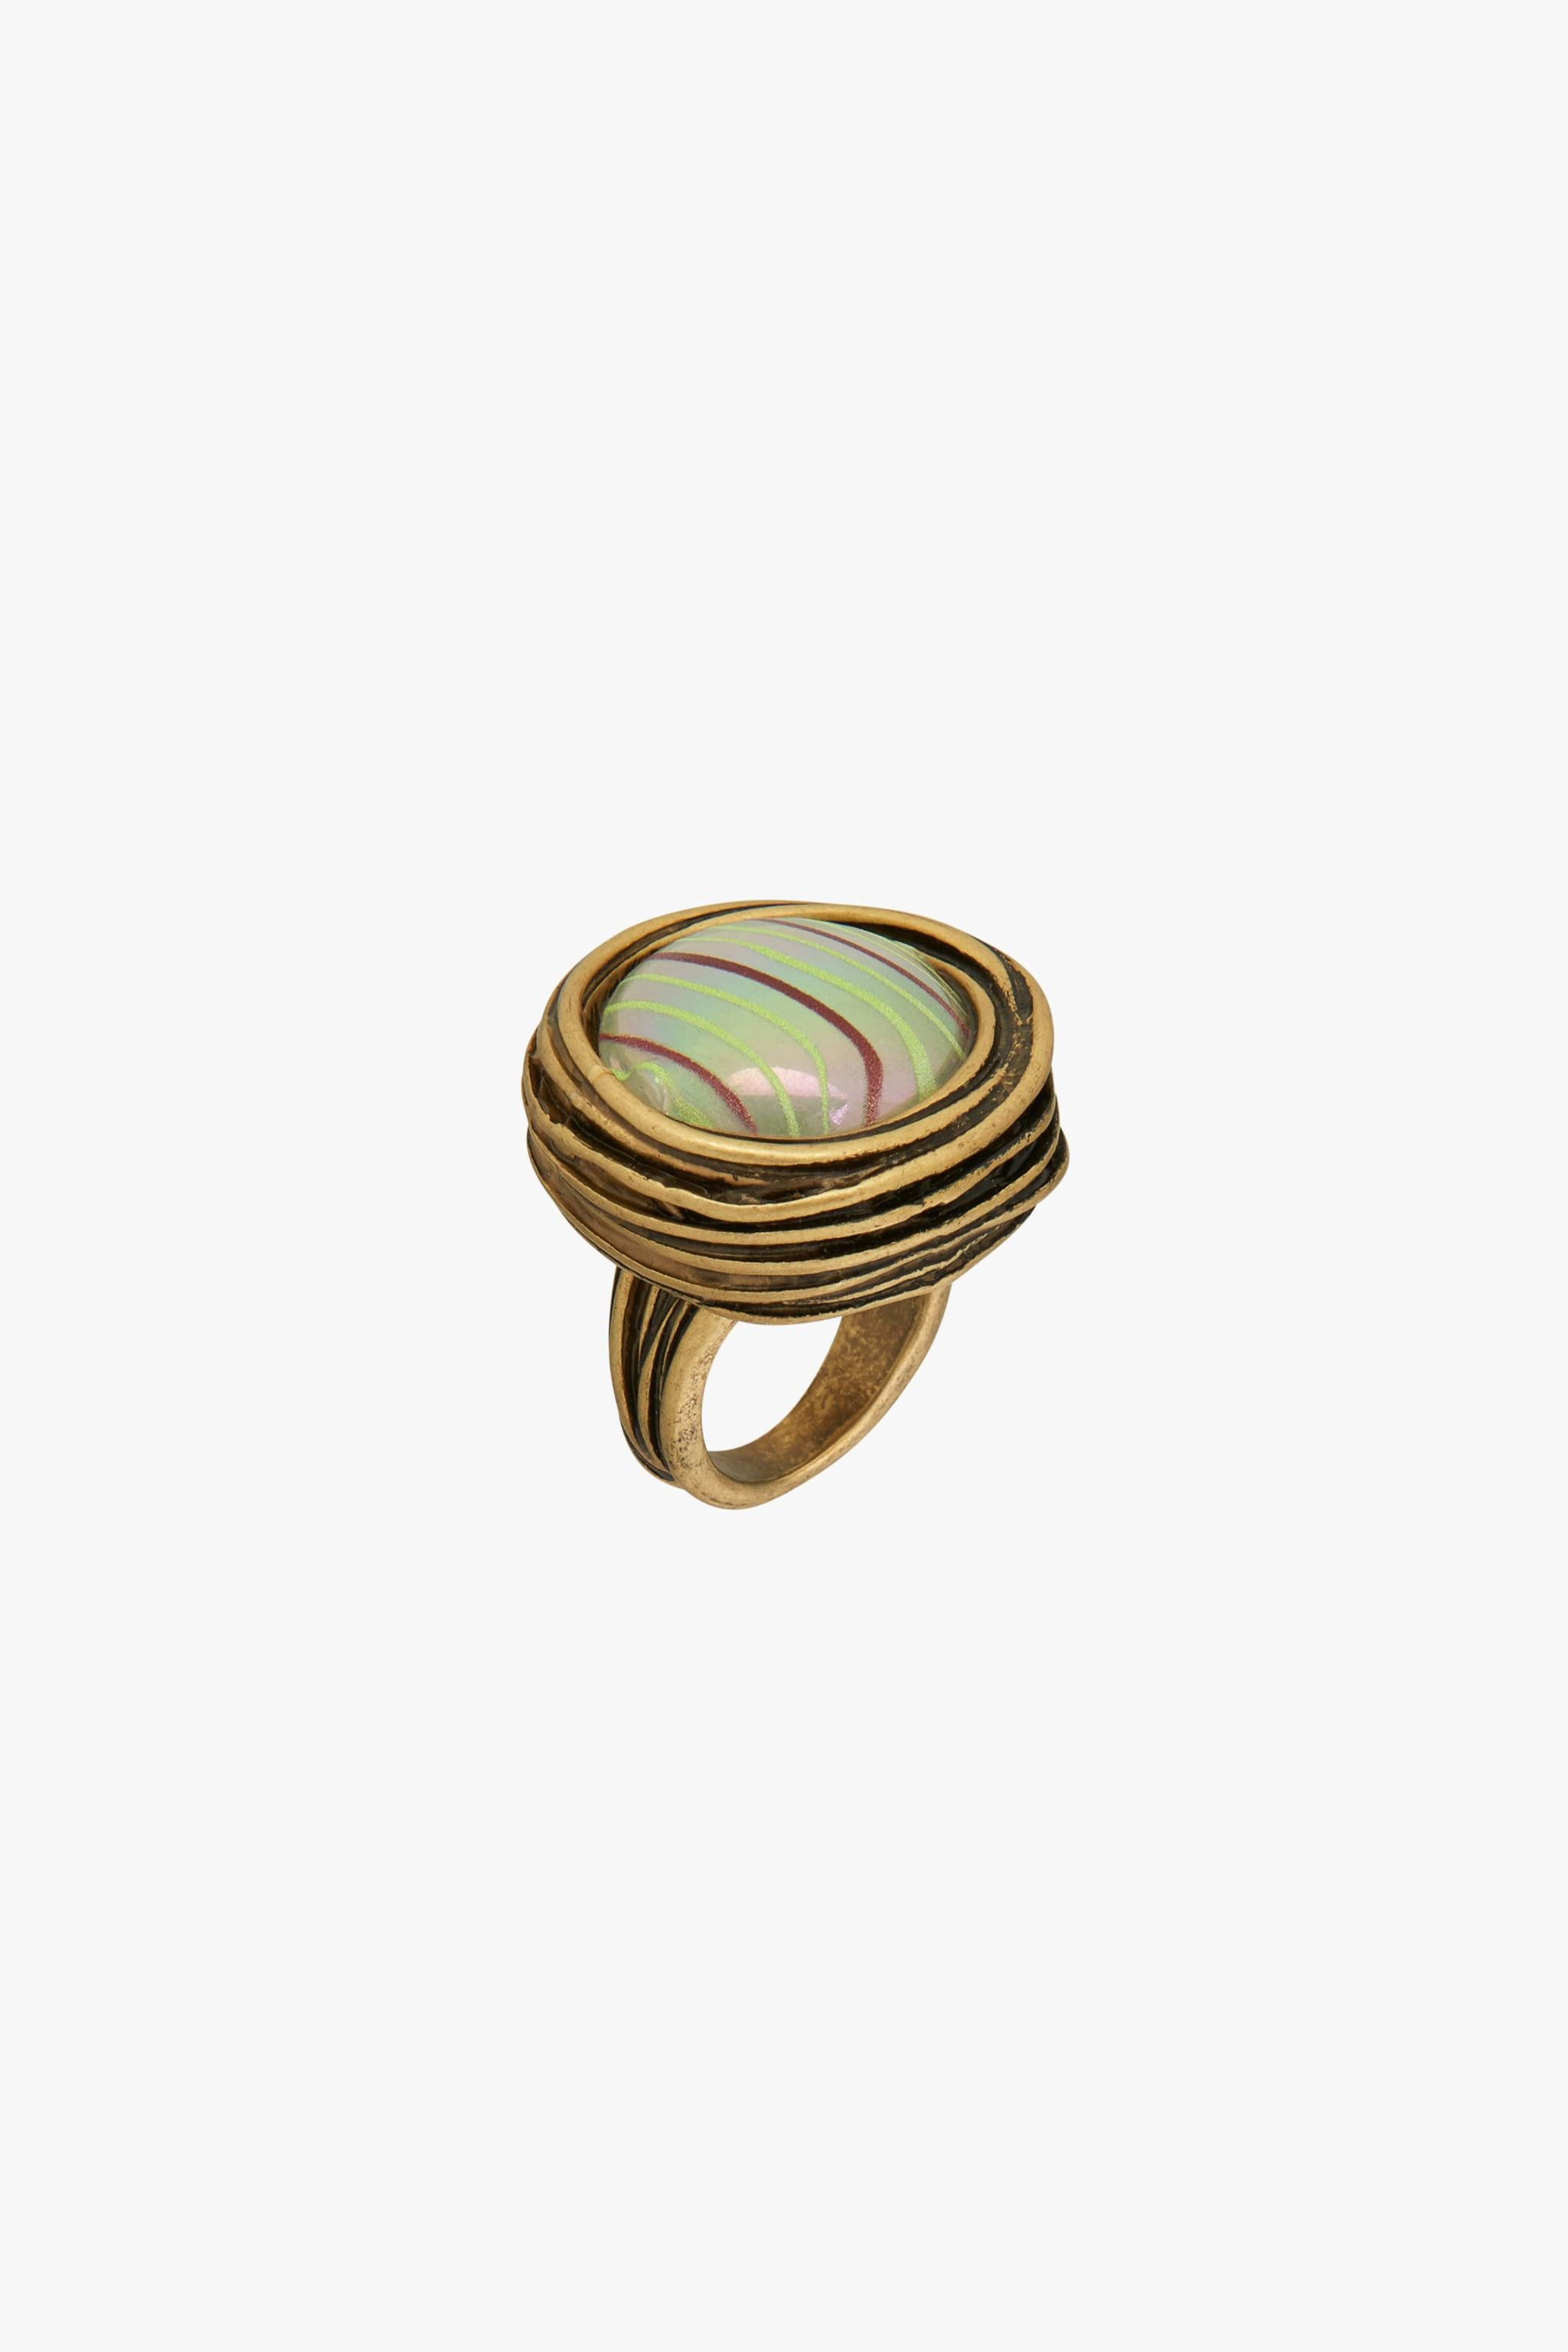 ROUND GLASS RING LIMITED EDITION